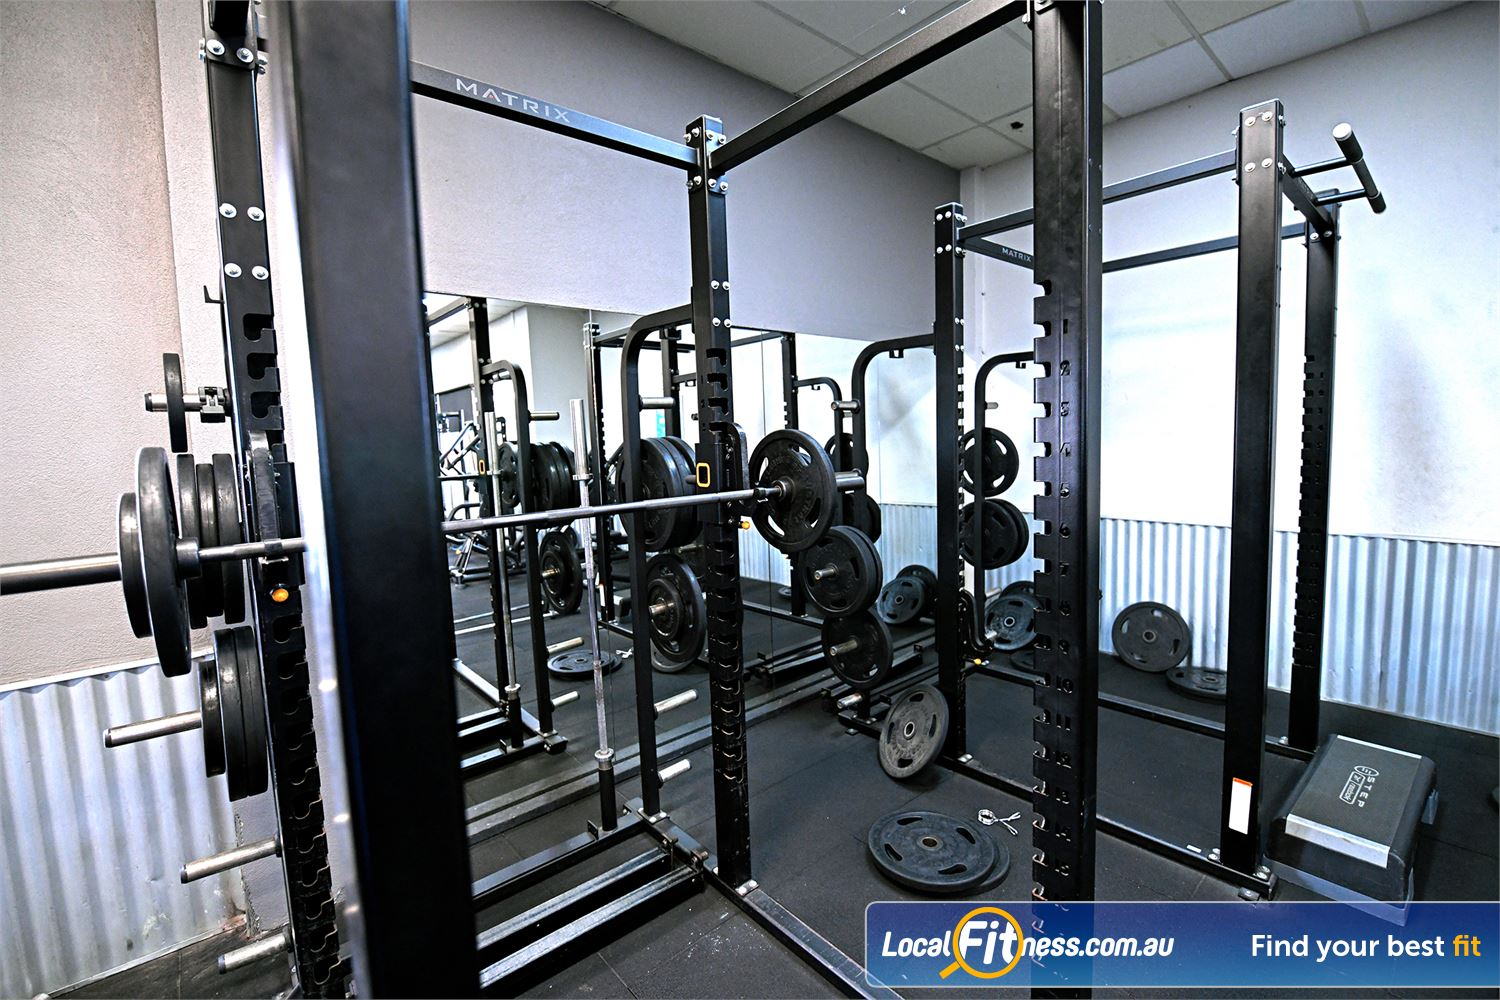 Goodlife Health Clubs Hoppers Crossing Our Hoppers Crossing gym has multiple heavy duty power racks.